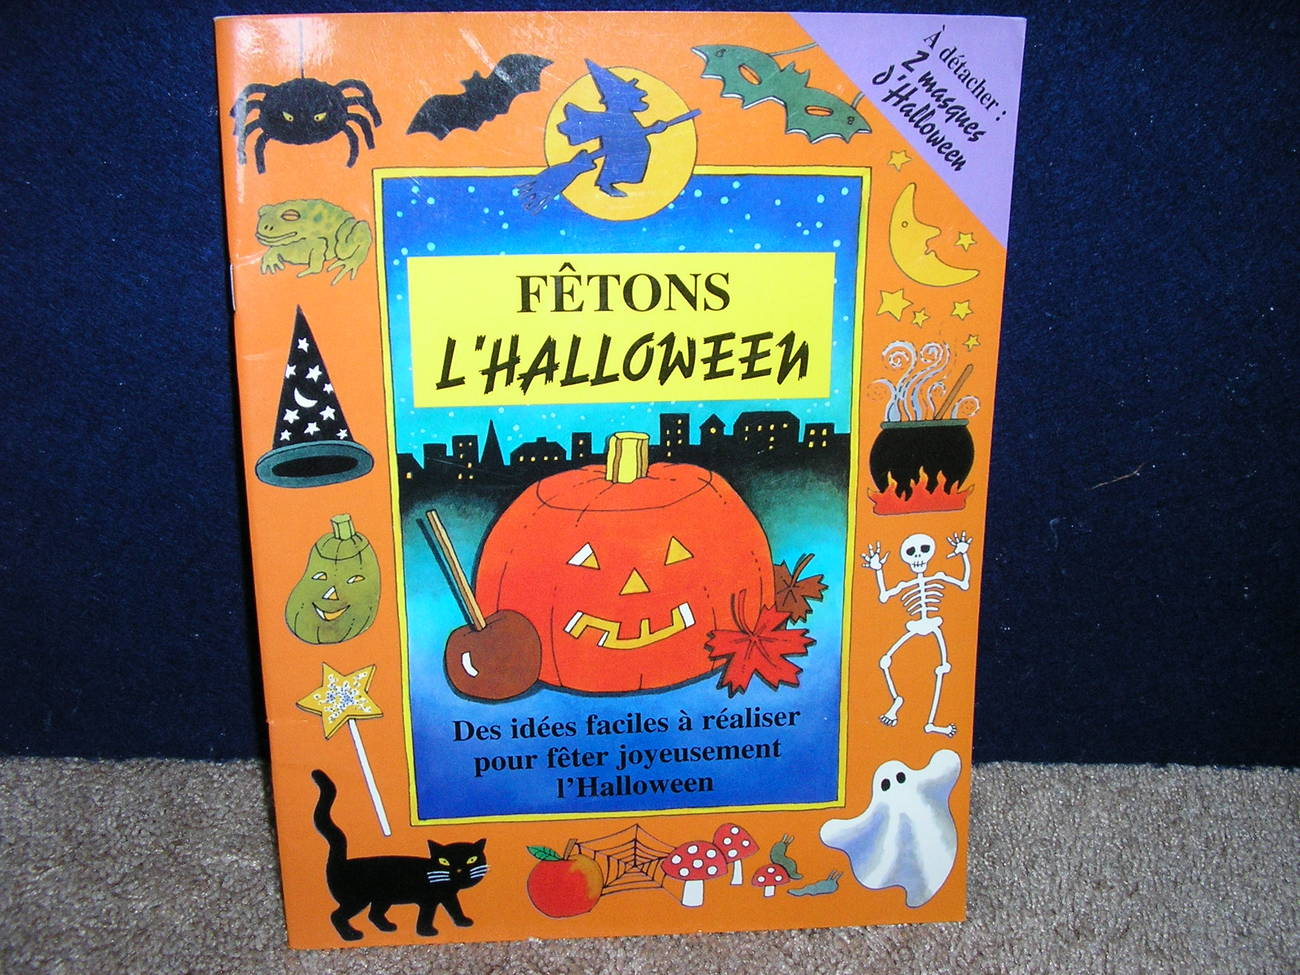 Fetons l'Halloween by Clare Beaton